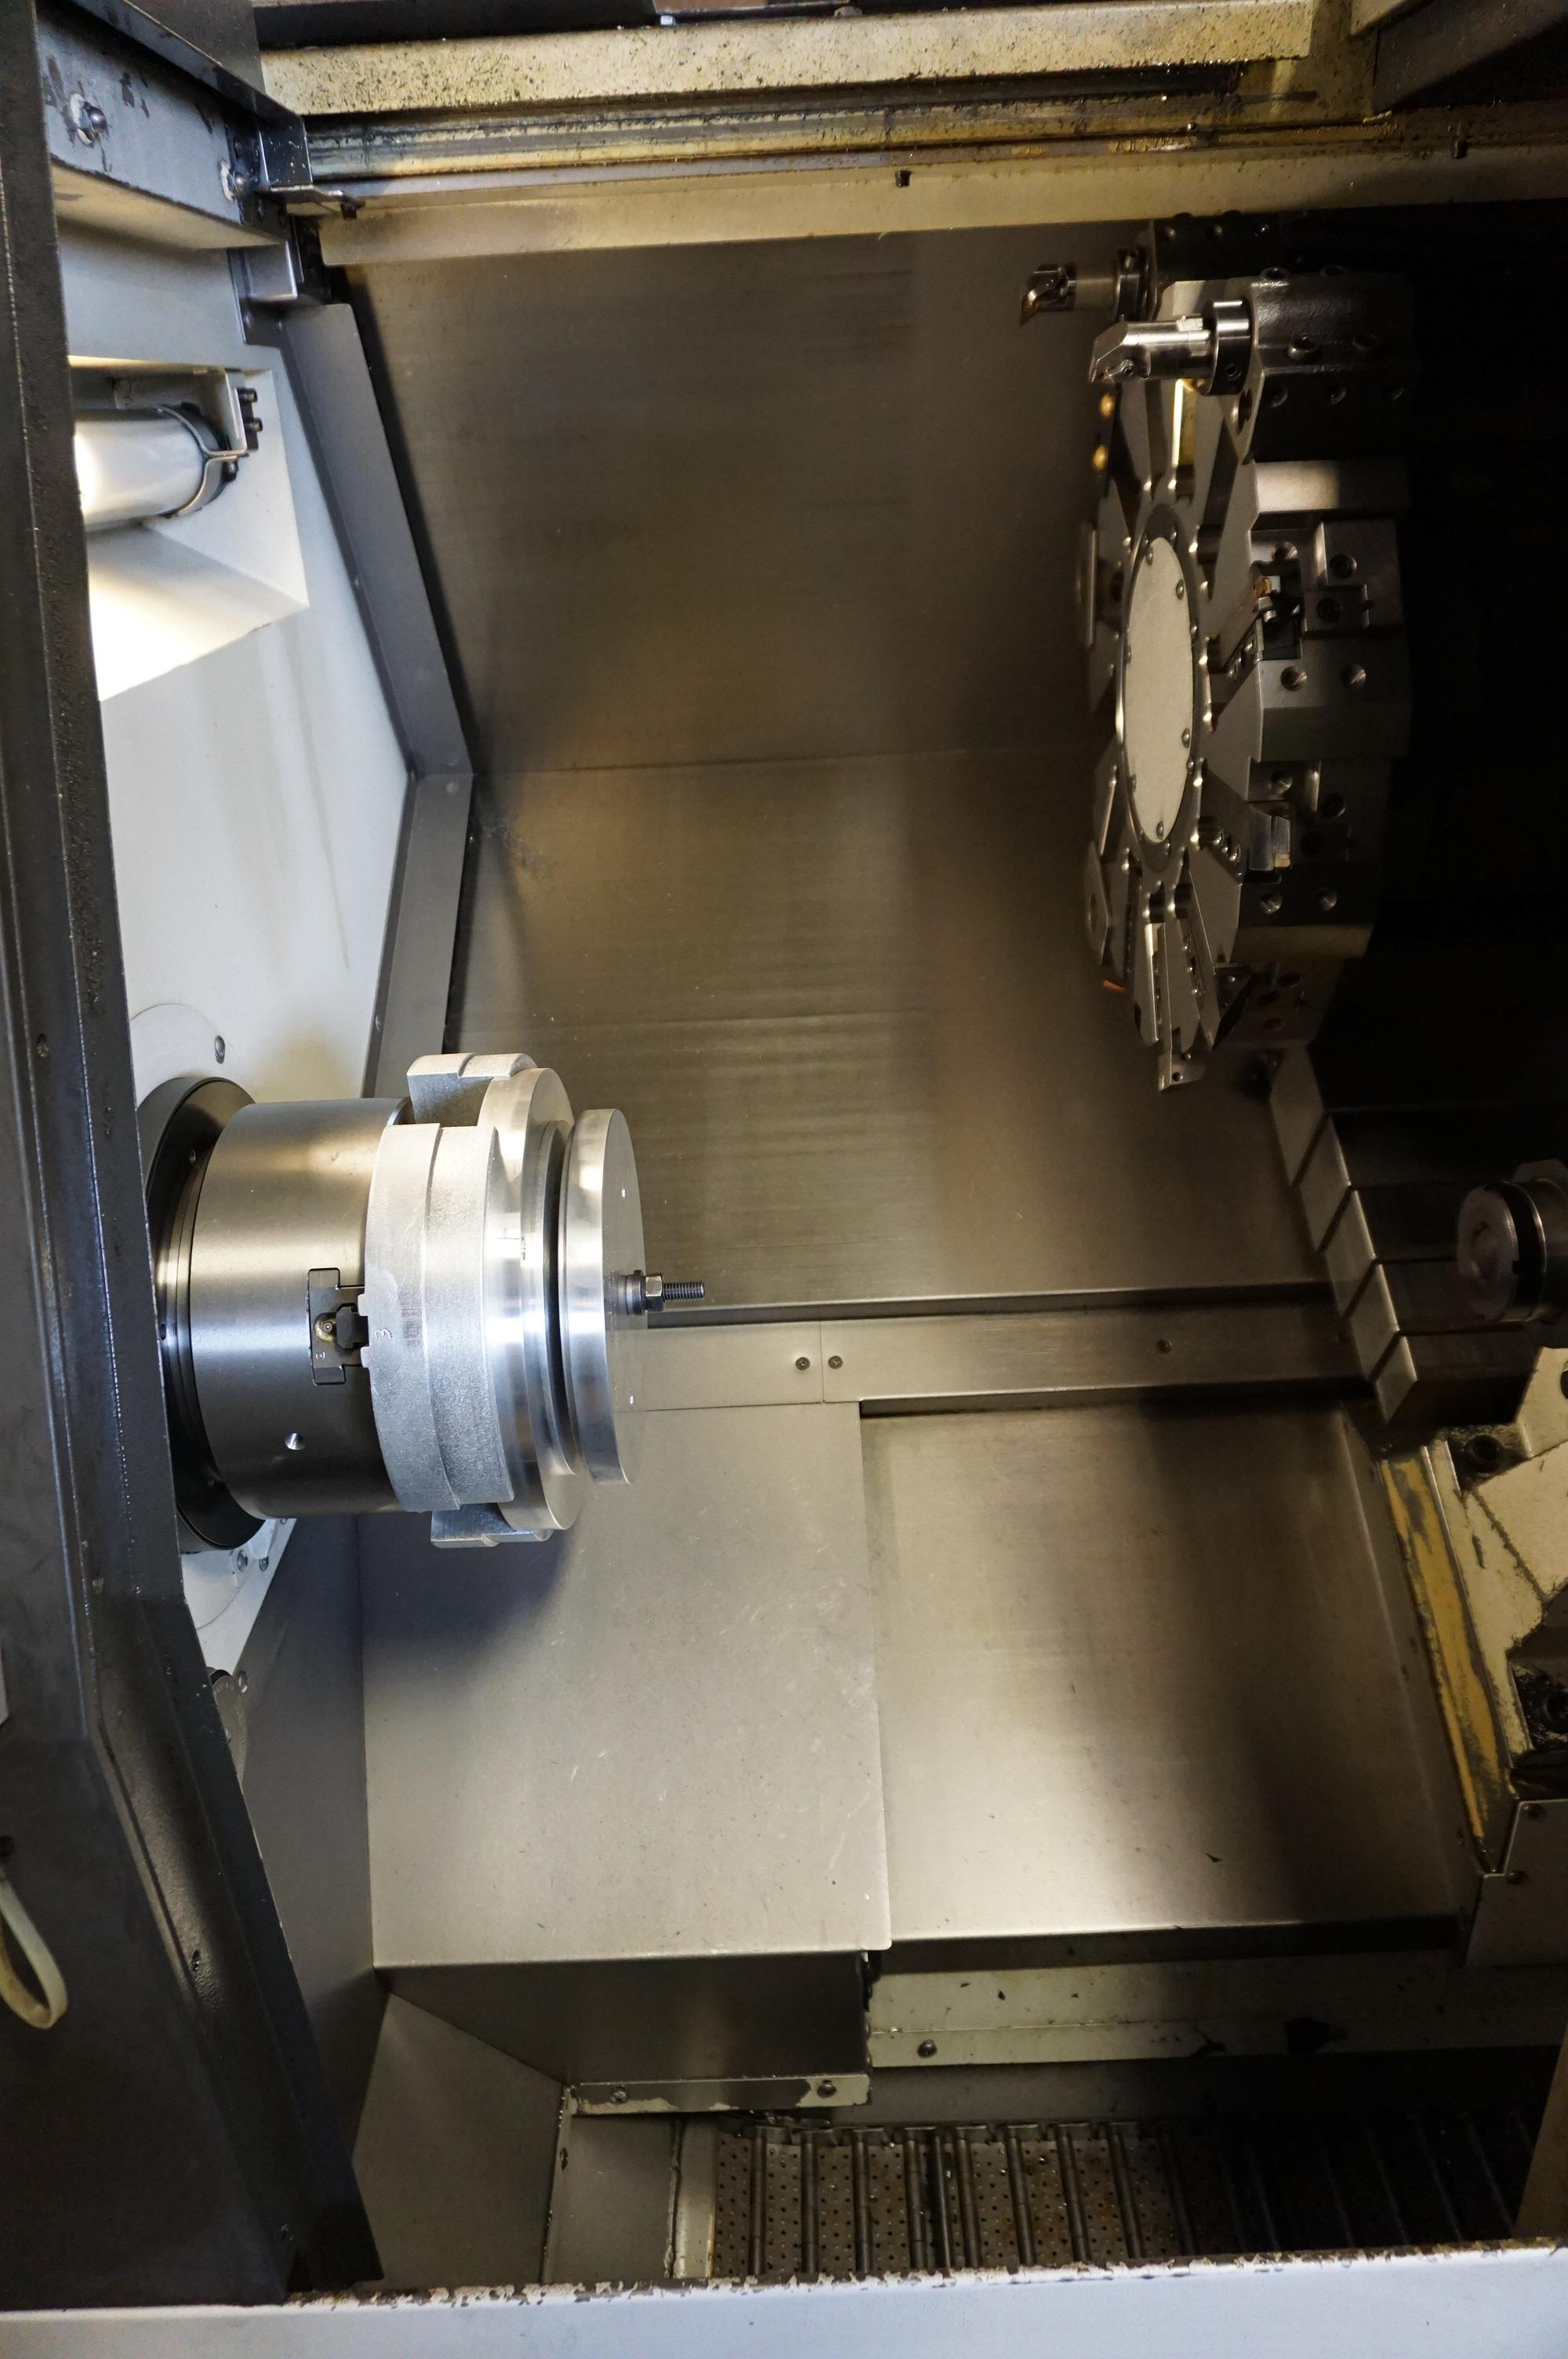 2006 MORI SEIKI DURATURN 2550 TURNING CENTER, S/N DT255FJ0044, WITH COOLJET HIGH PRESSURE COOLANT - Image 3 of 11